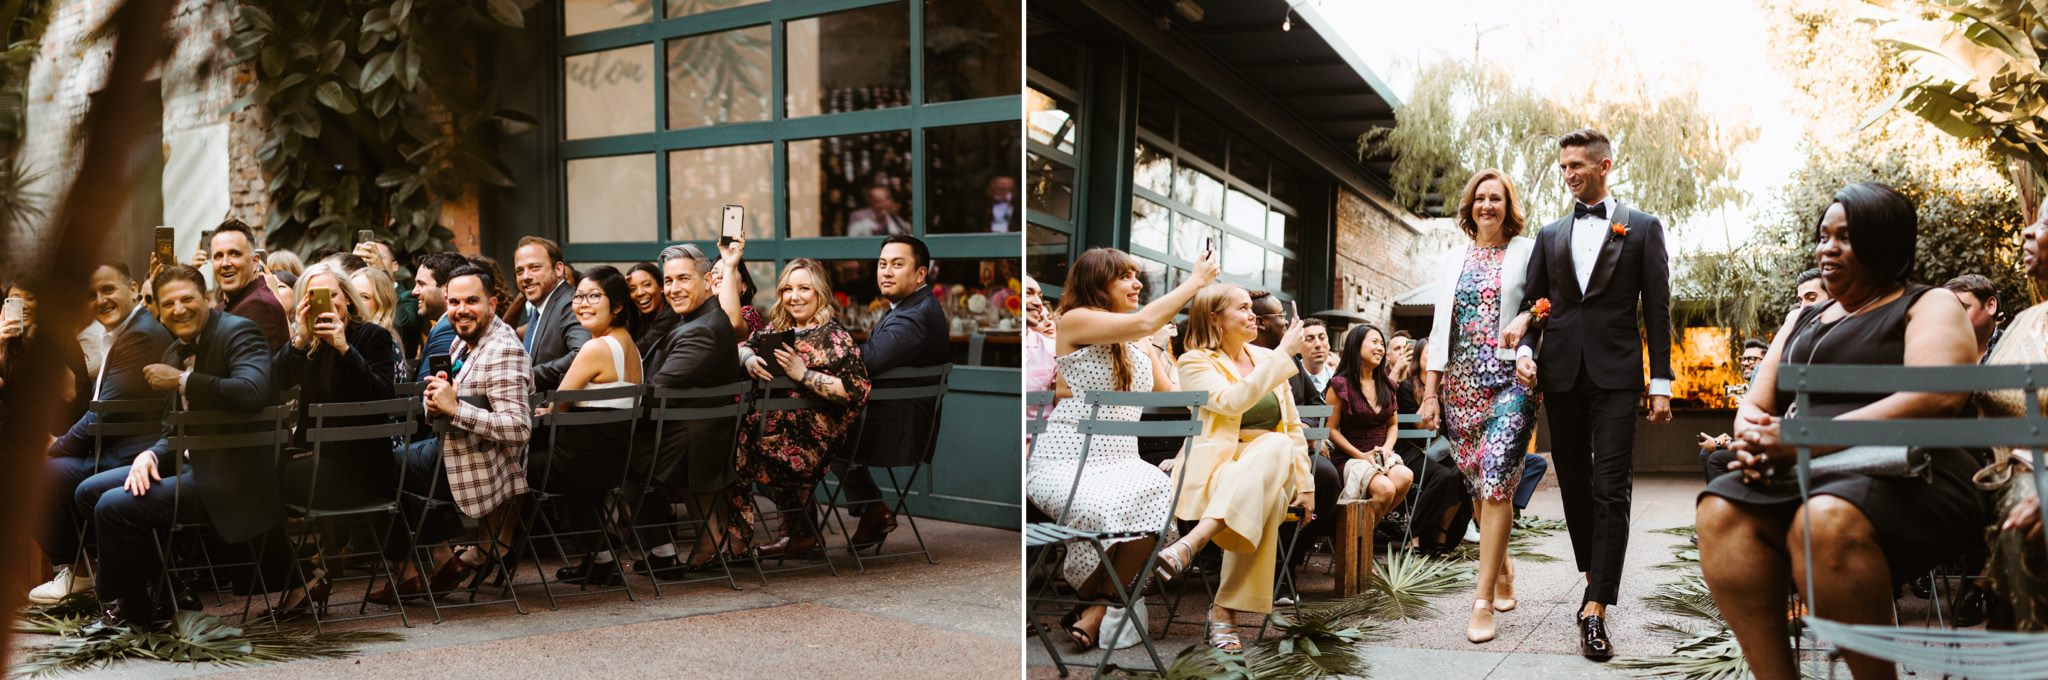 dtla wedding photographer 062